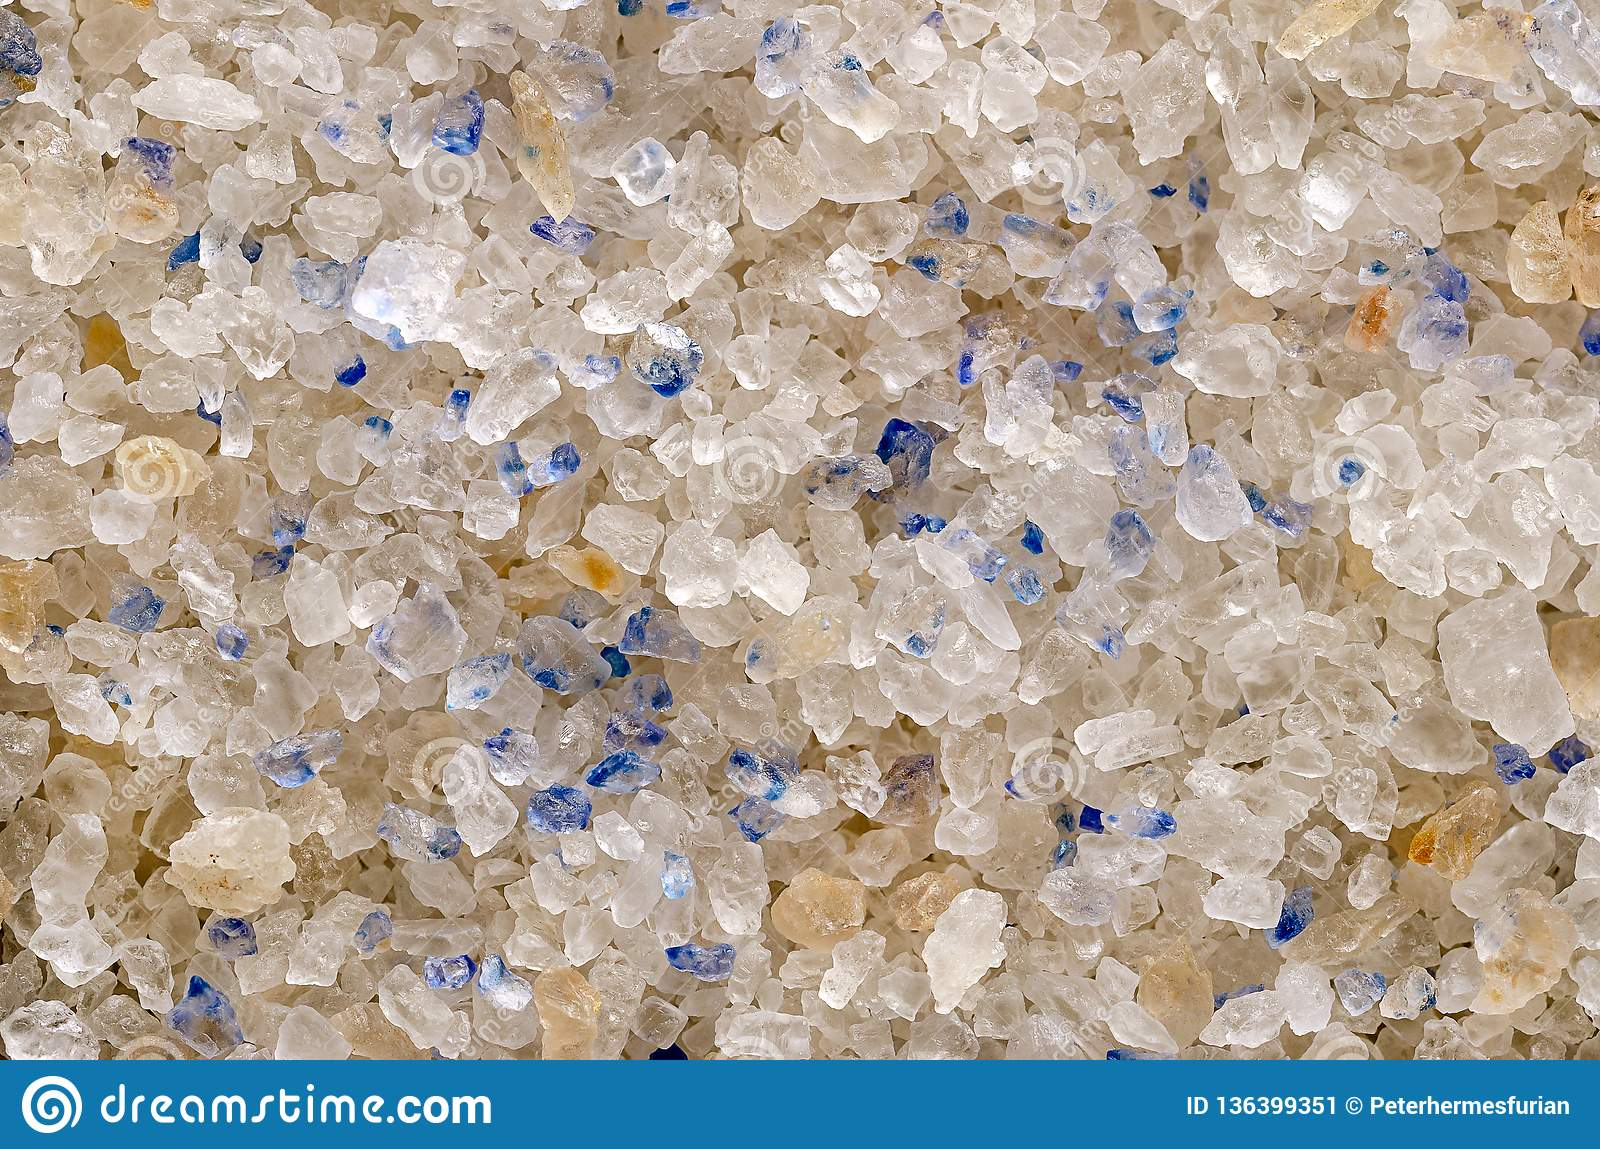 Persian Blue Salt crystals closeup, surface and background